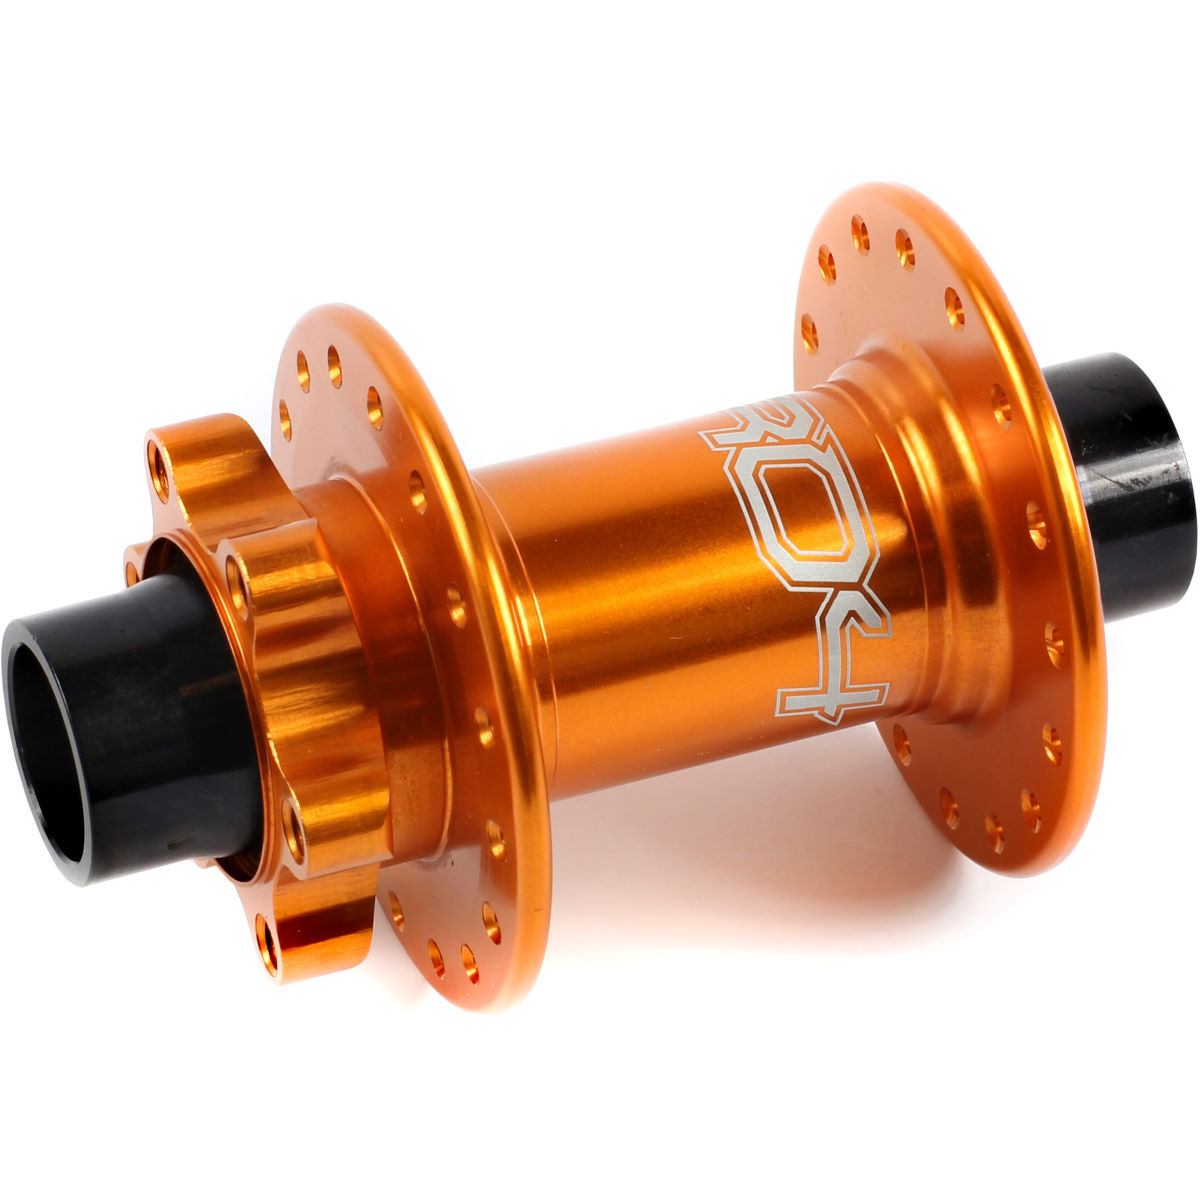 Moyeu avant VTT Hope Pro 4 (axe 20 mm) - 36h - 20mm Axle Orange